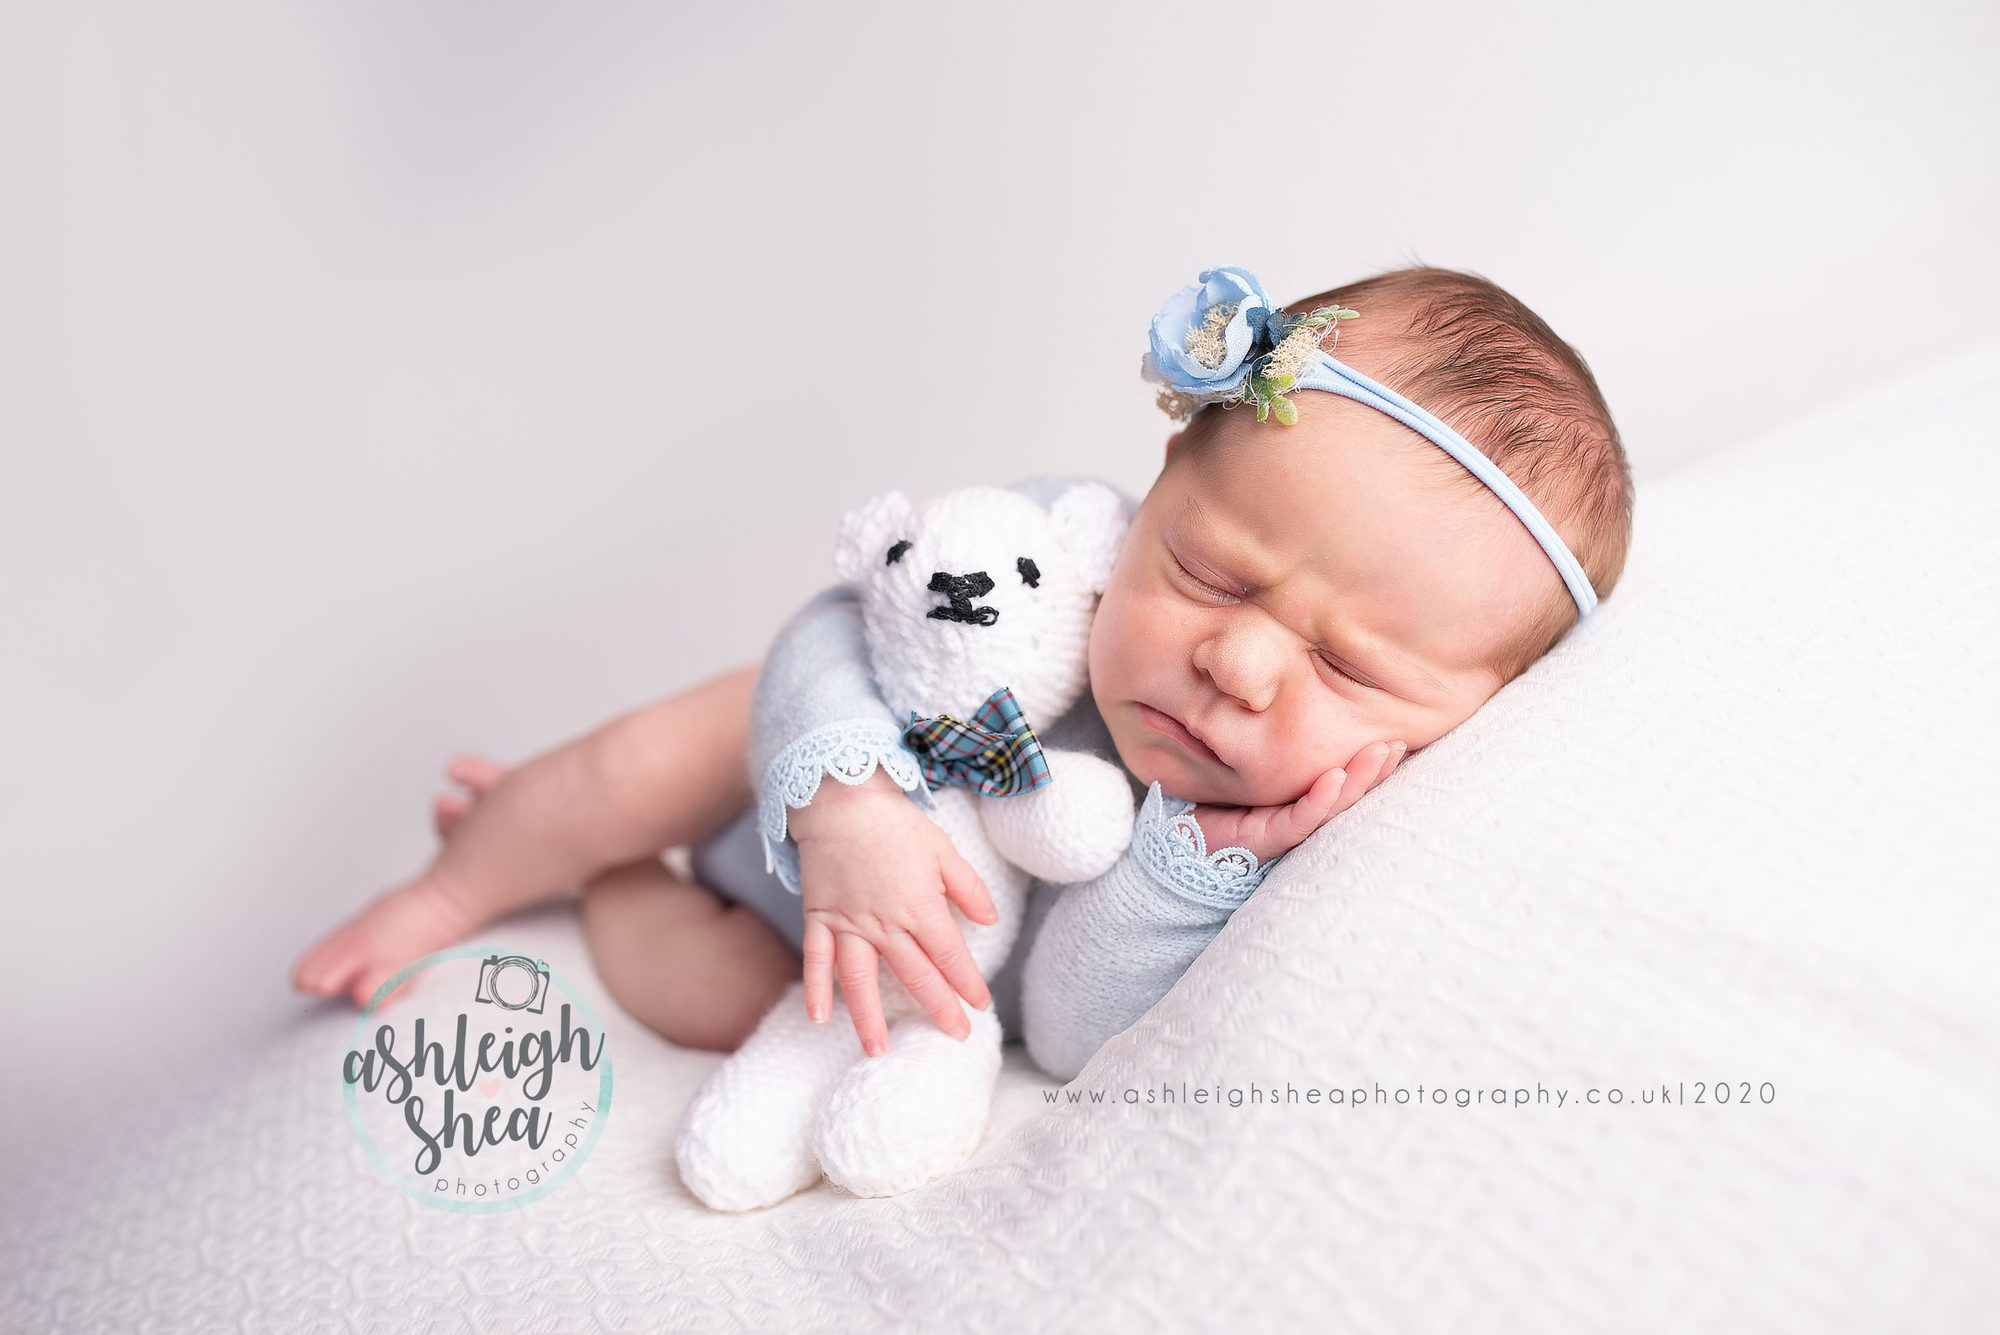 Handmade bear, knitted by nan, baby blue, baby girl, ashleigh shea photography, orpington, london